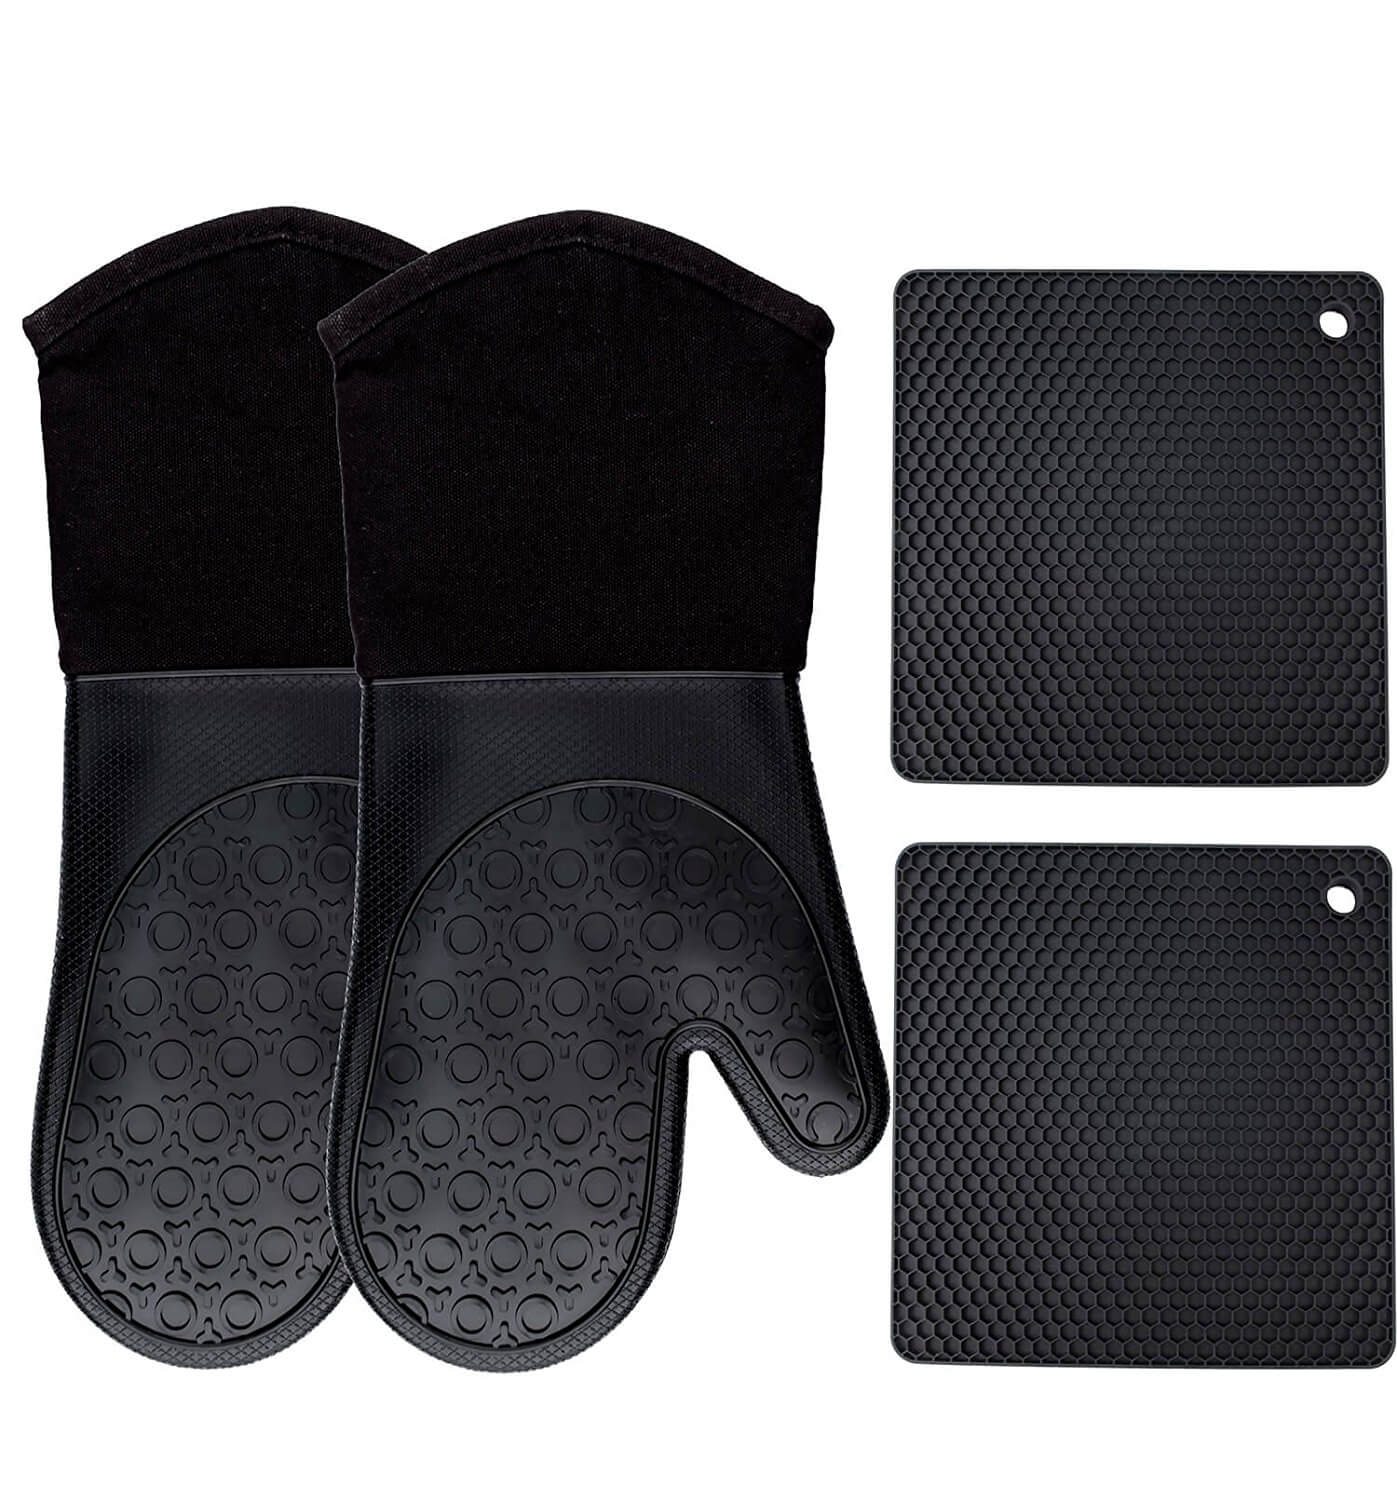 Homwe Silicone Oven Mitts and Potholders